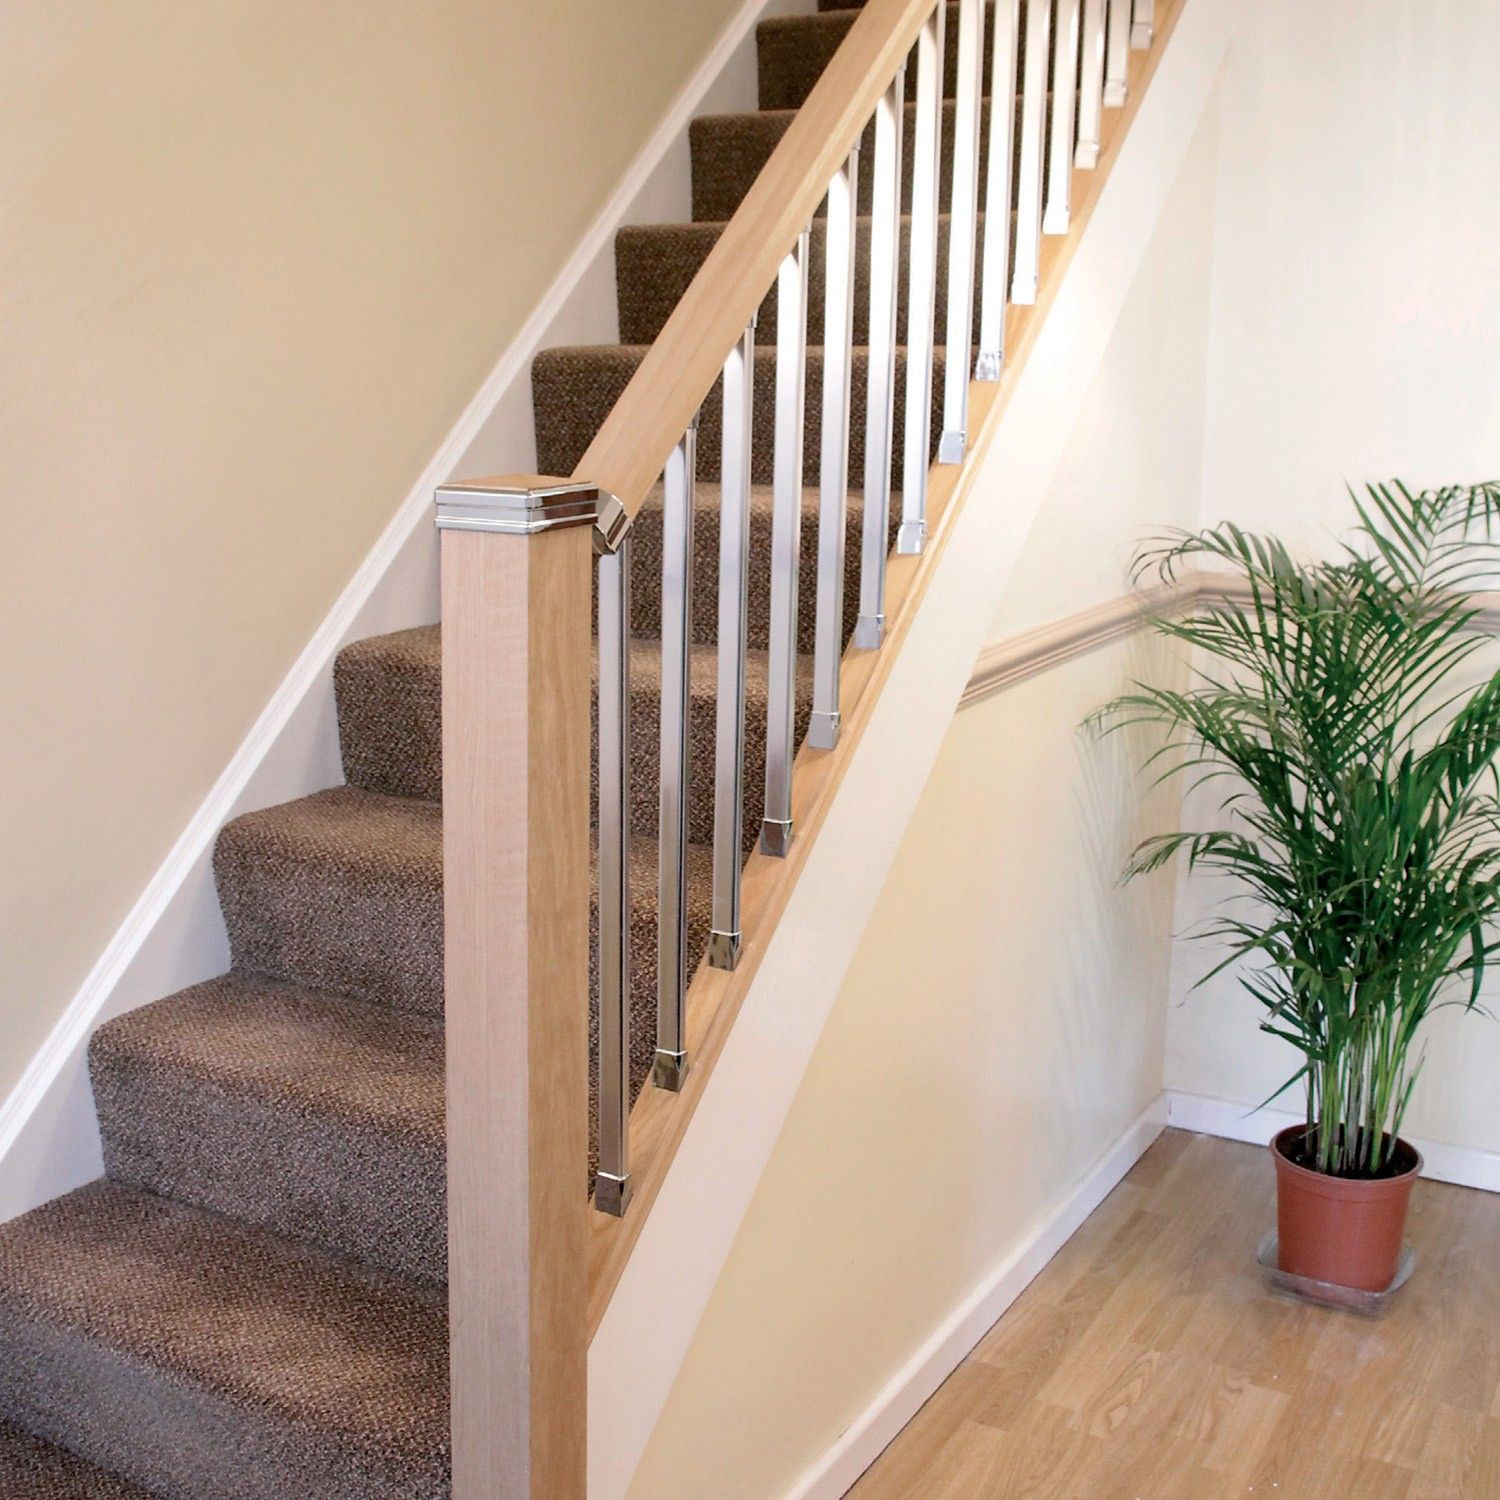 Wooden Stairs With Painted Stripes Updating Interior: Solution Chrome Rake Spindle In 2020